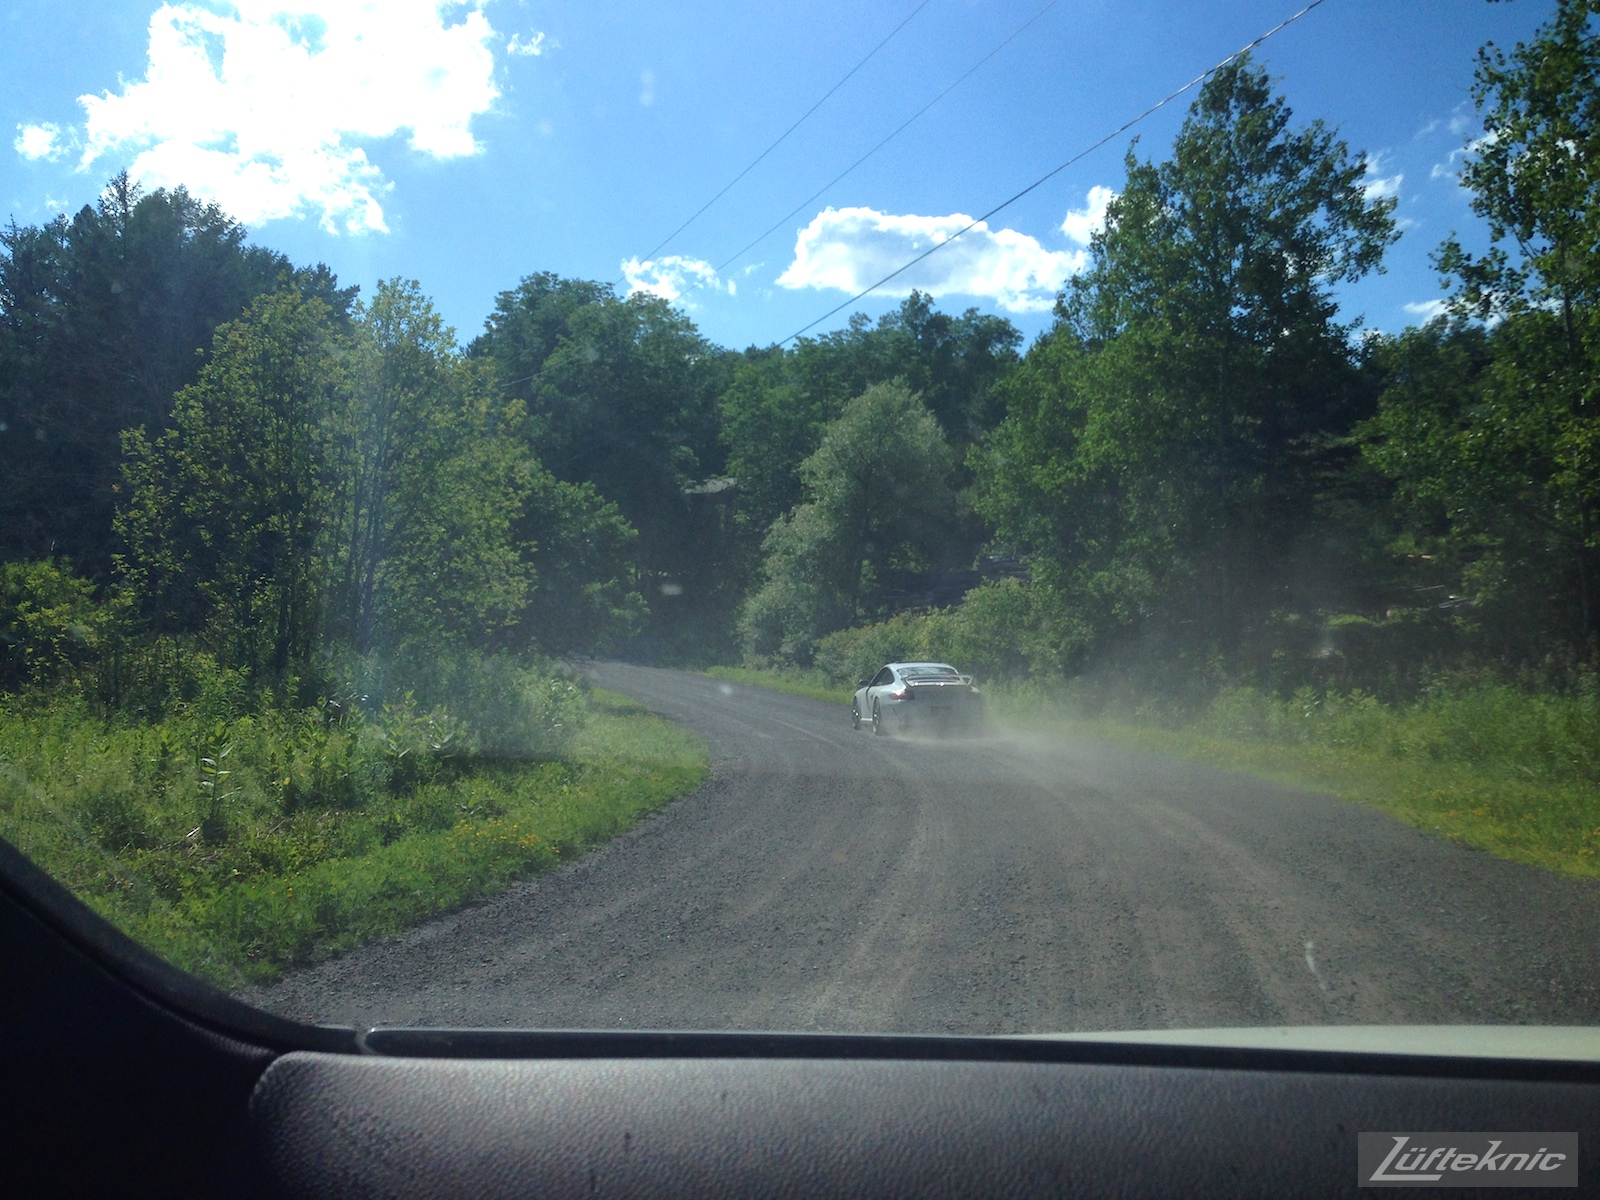 A white 997 GT3 driving on a gravel road.